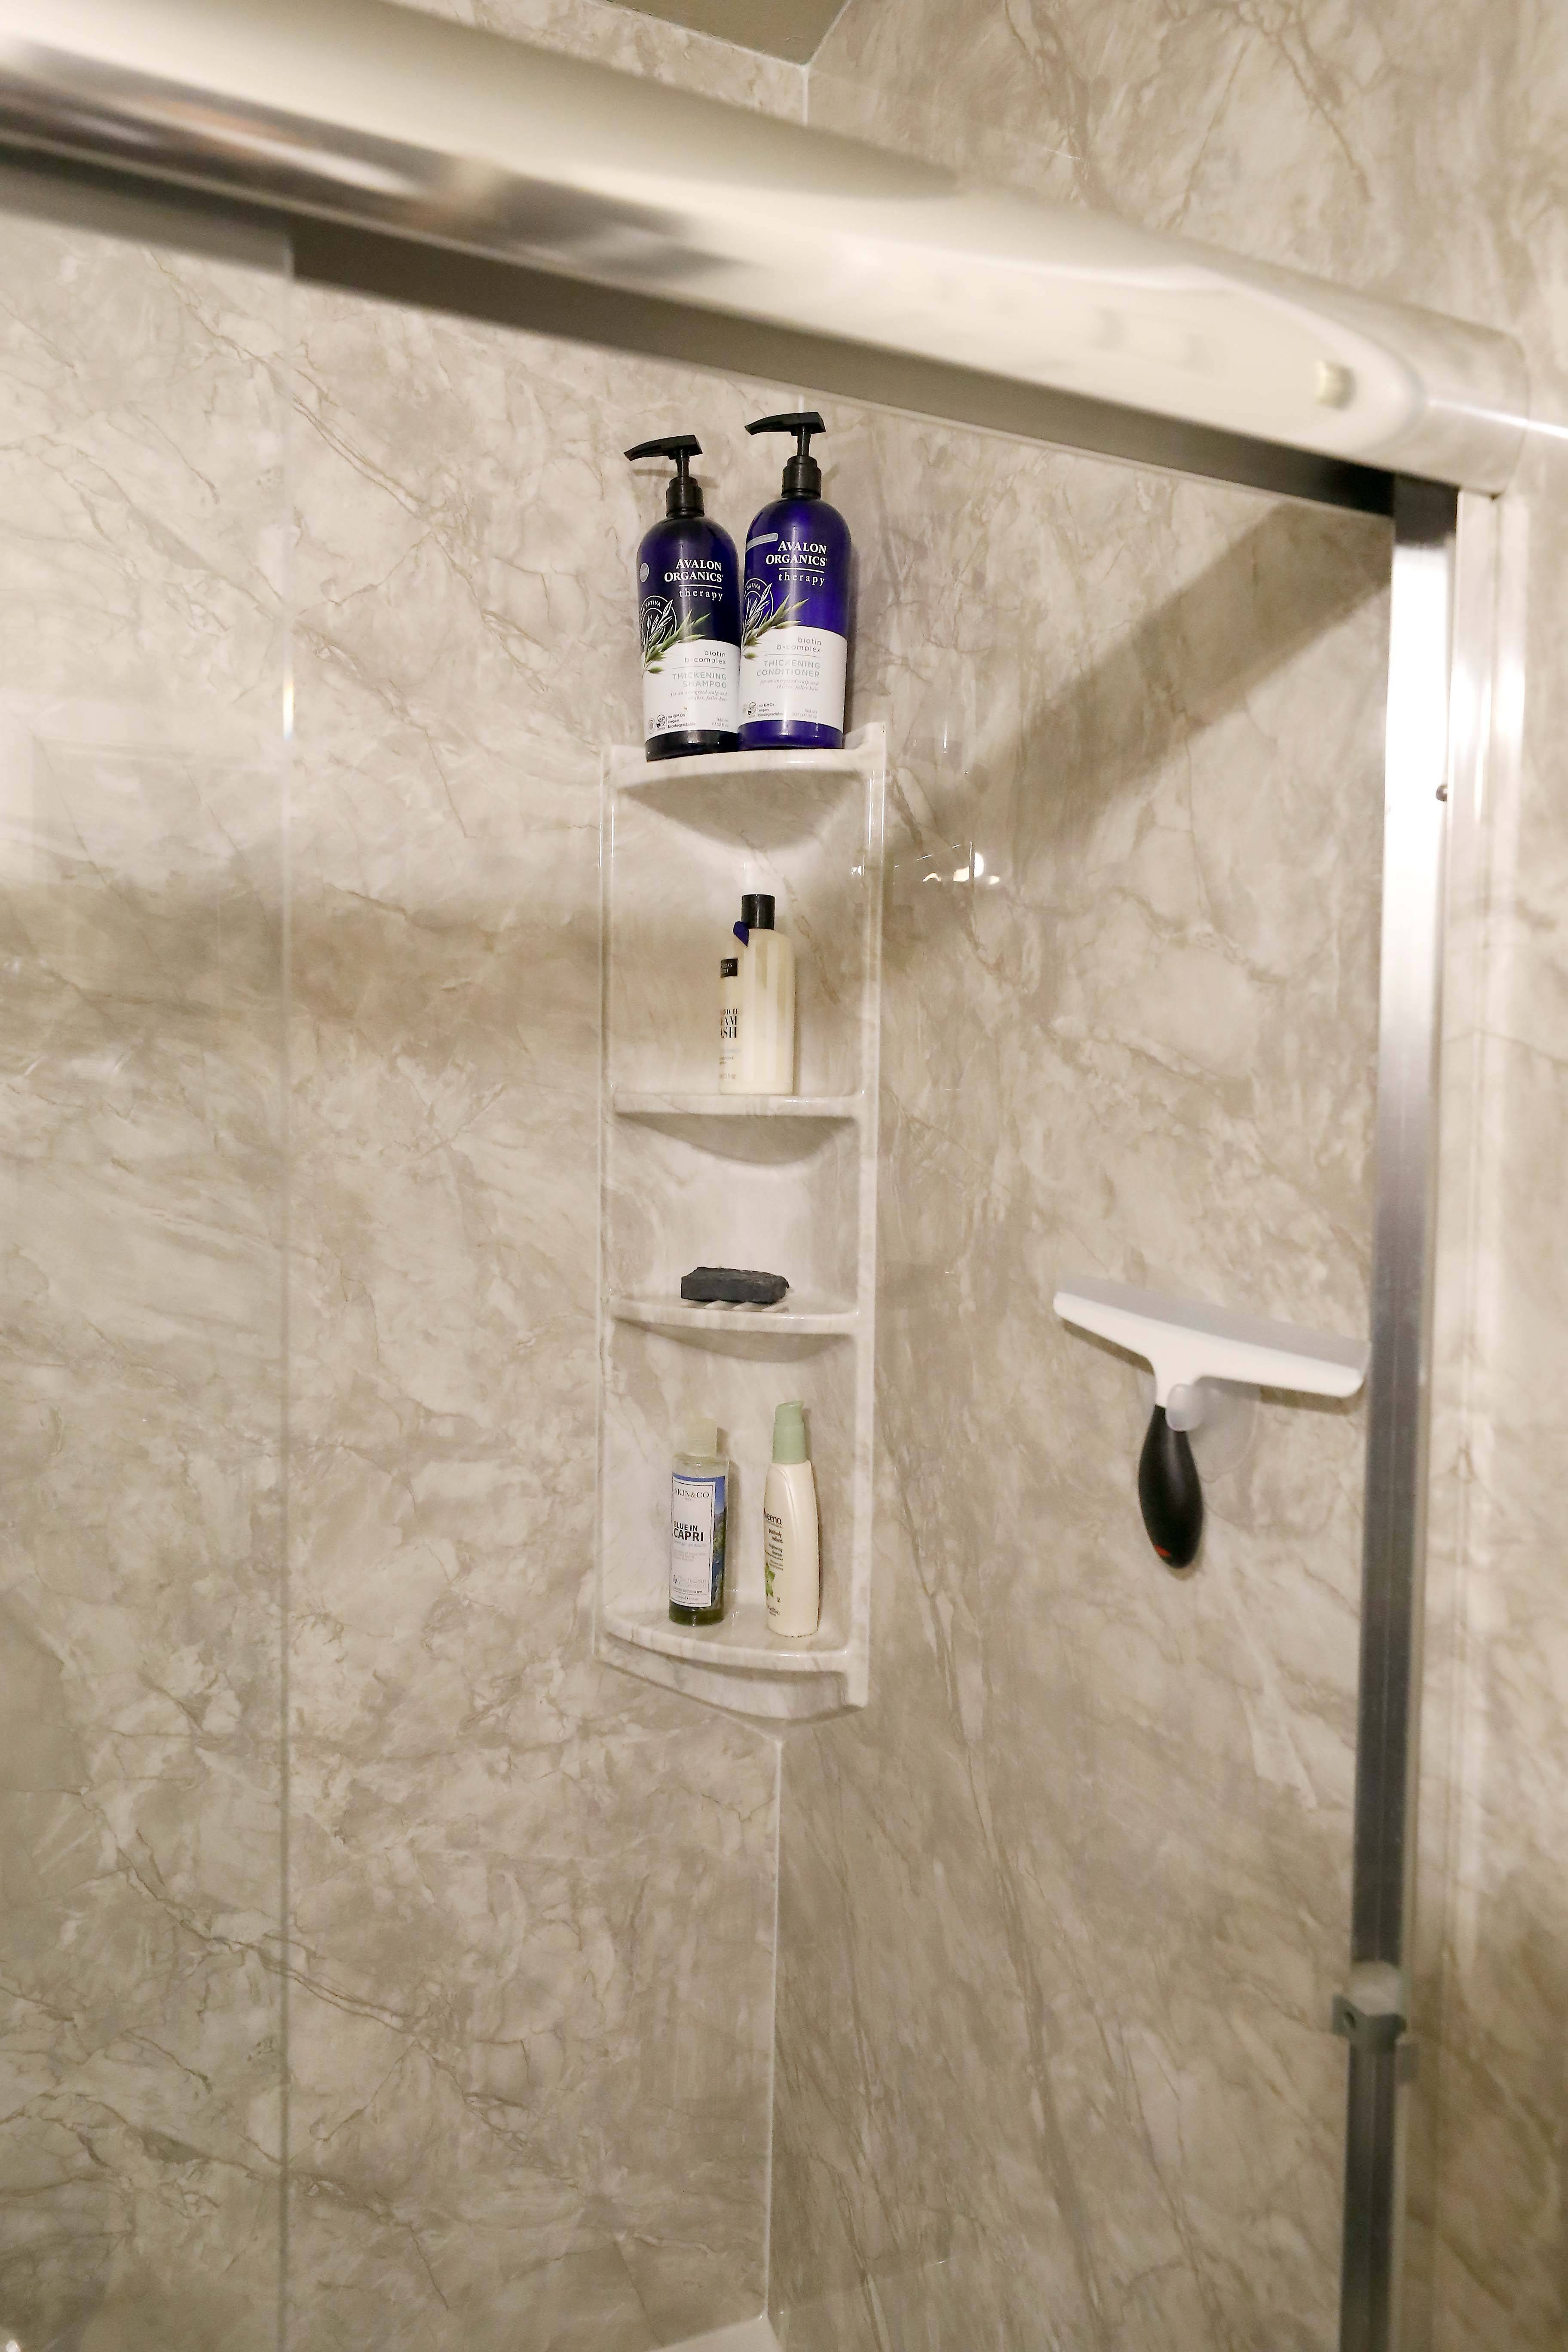 Bath Planet also installed a shelving unit in the Augustines' new shower.